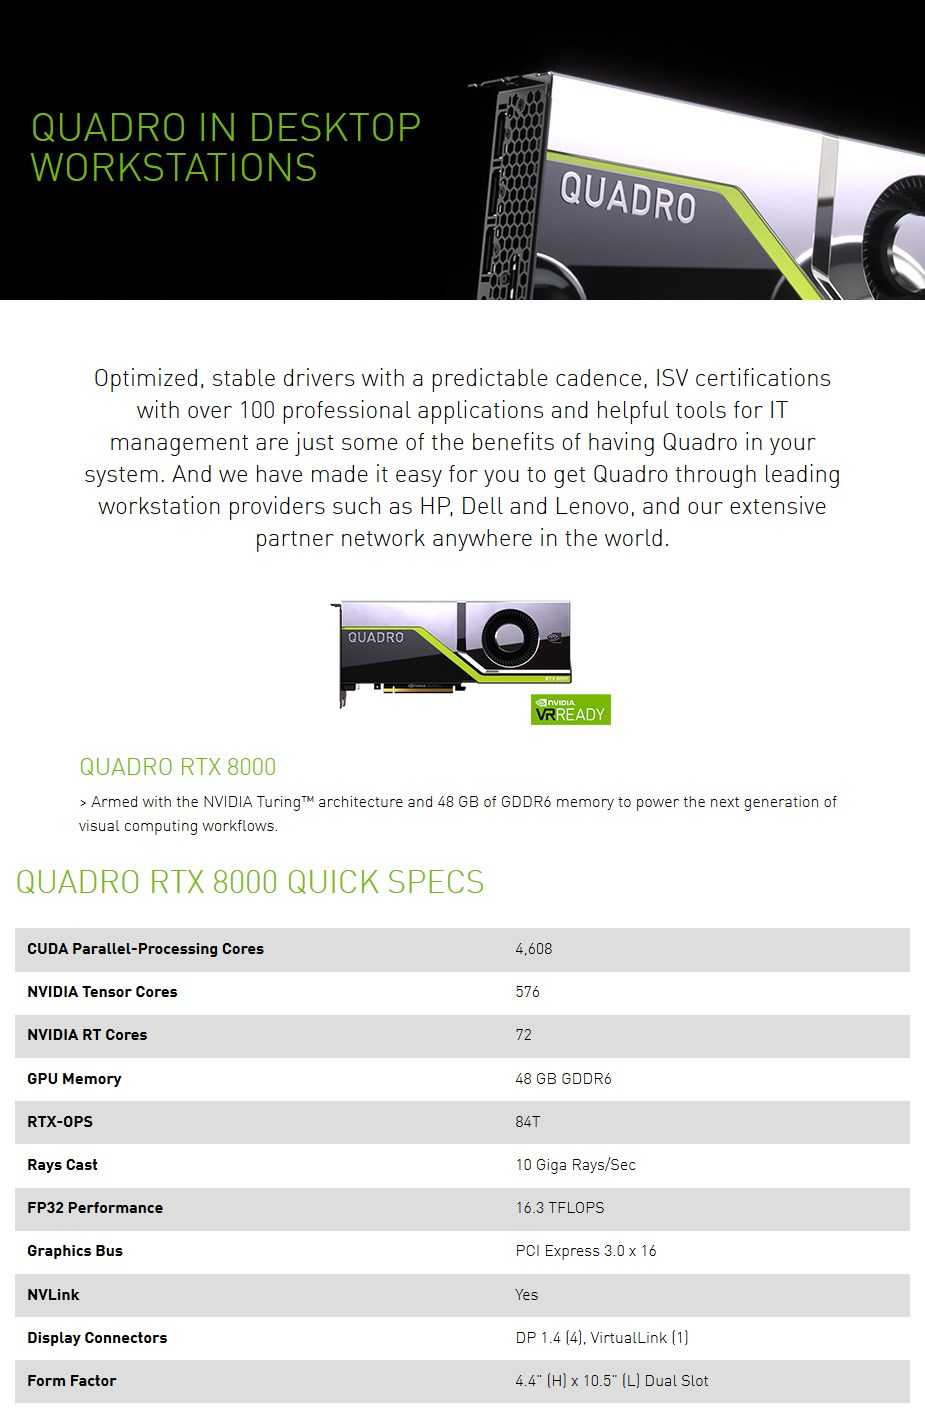 A large marketing image providing additional information about the product Leadtek Quadro RTX 8000 576-Tensor Core 48GB GDDR6 - Additional alt info not provided